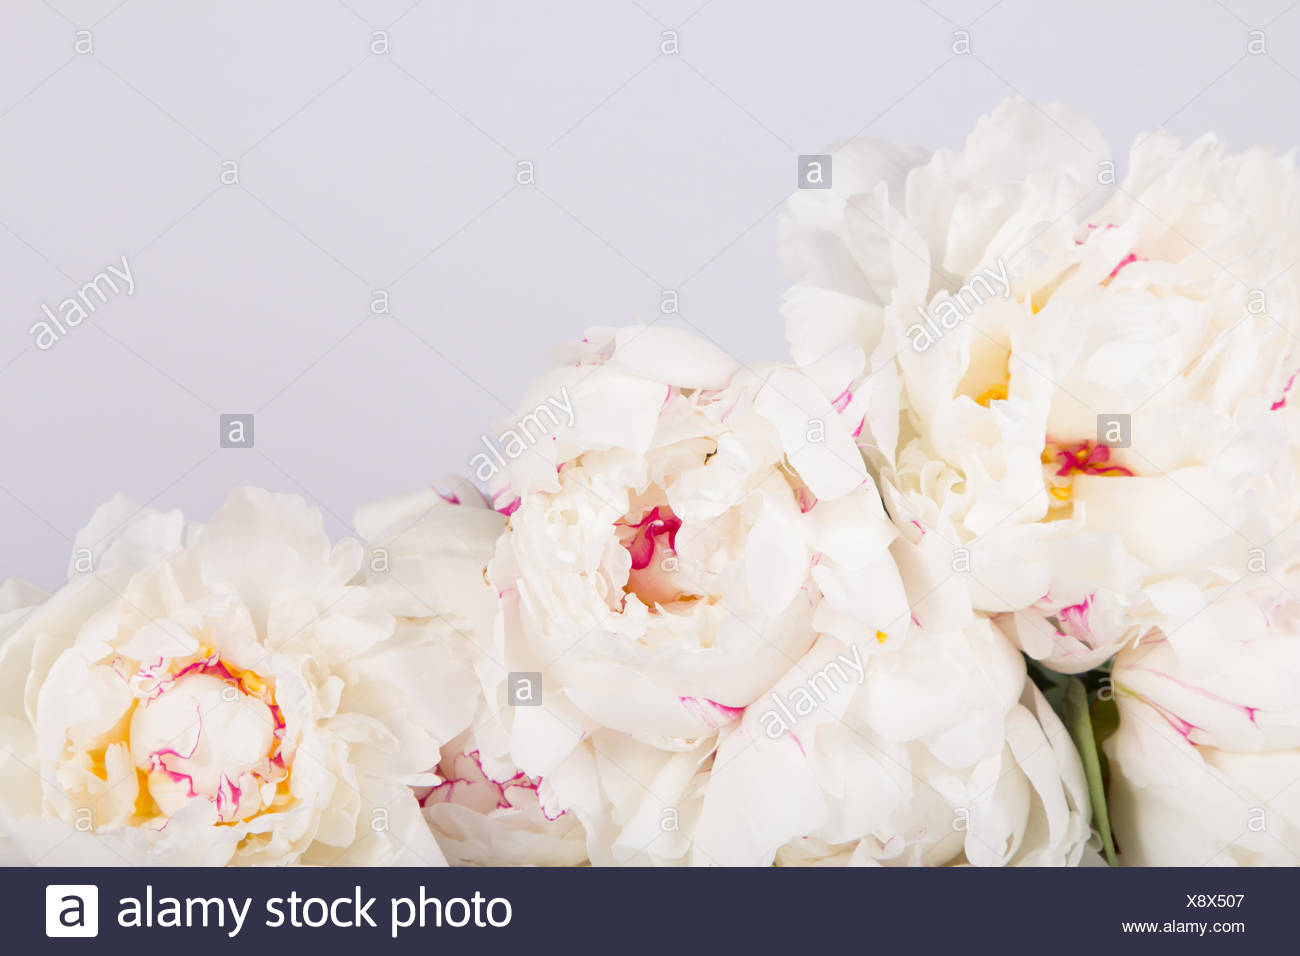 White Peonies Against White Background - Stock Image